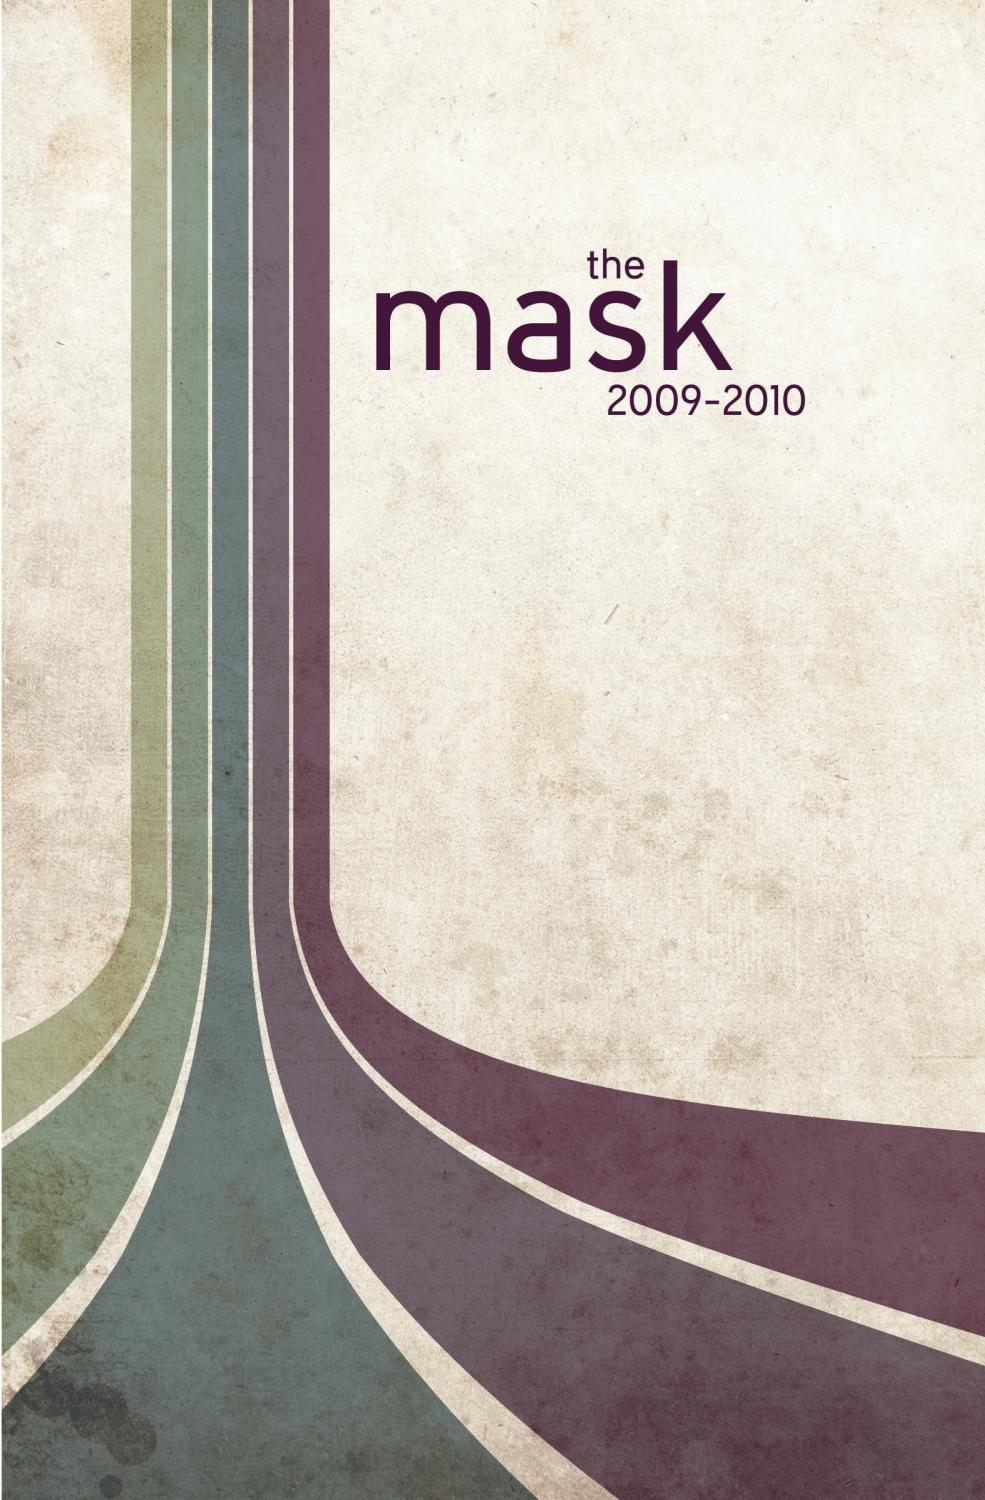 48cad4b182dc The Mask 09 10 by calebagee - issuu